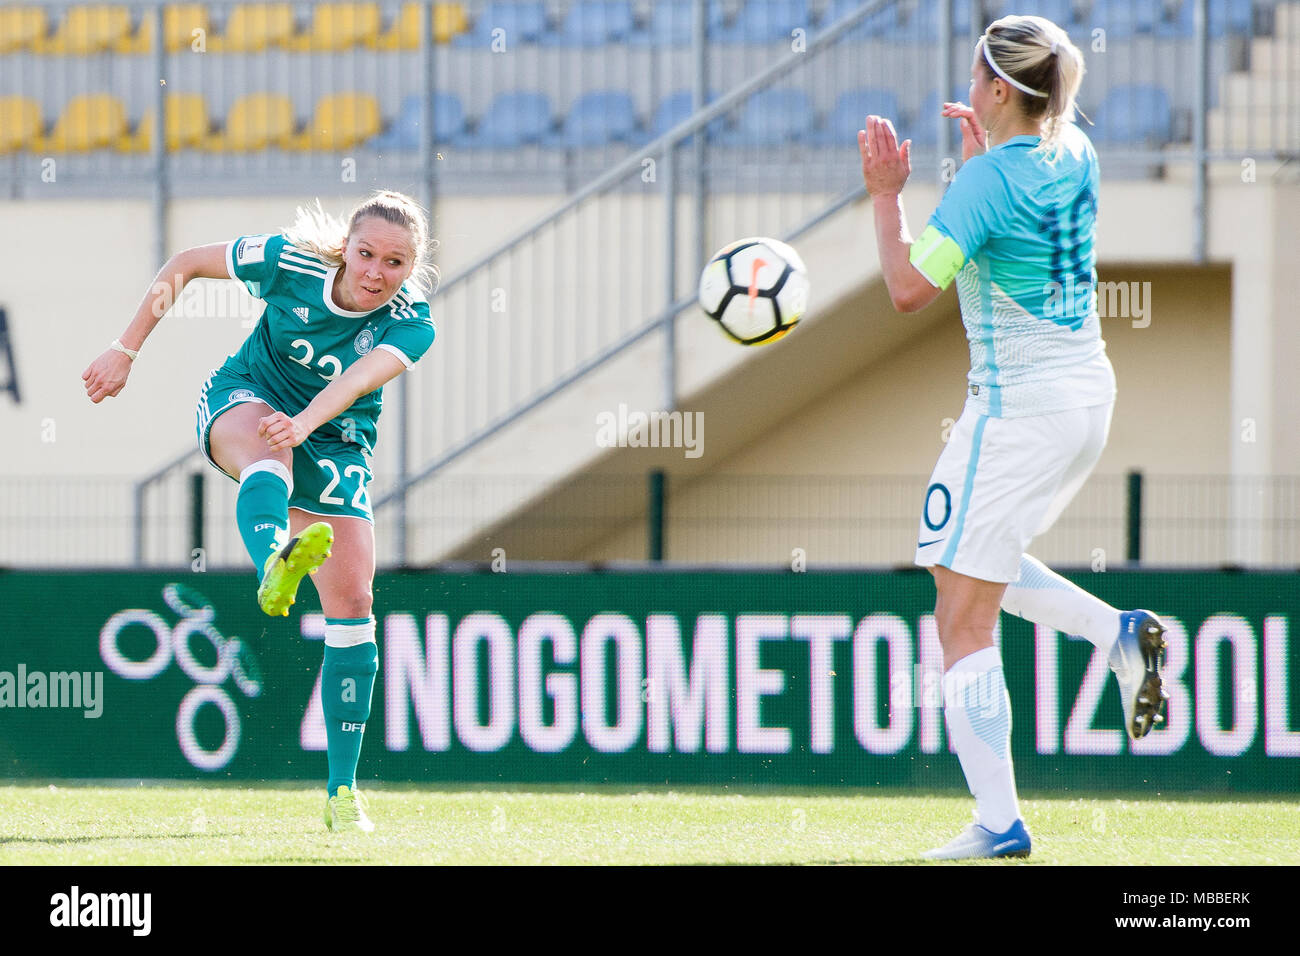 Domzale, Slovenia. 10th Apr, 2018. 10 April 2018, Slovenia, Domzale: Soccer, Women's World Cup qualification, Europe, group stages, Slovenia vs Germany. Germany's Turid Knaak (L) and Slovenia's Dominika Conc vie for the ball. Credit: Sasa Pahic Szabo/dpa/Alamy Live News - Stock Image